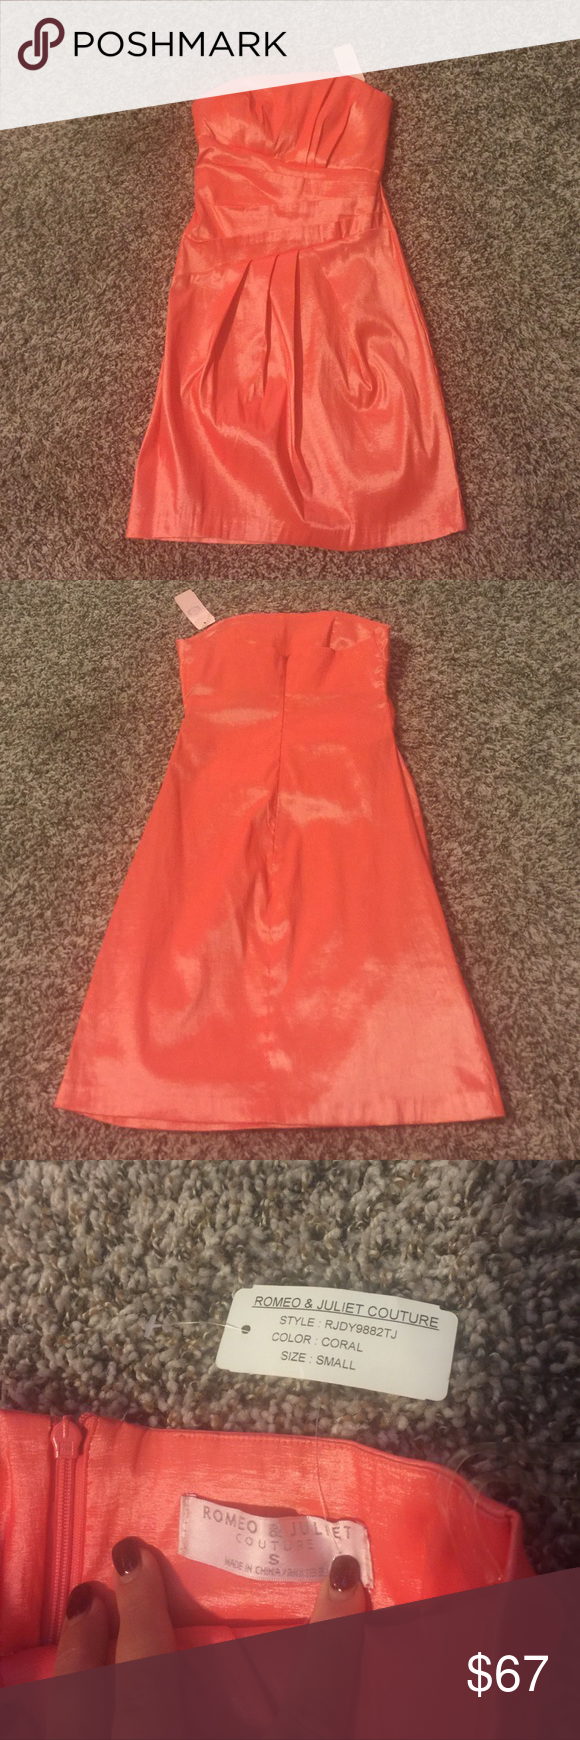 "Romeo & Juliet Couture coral dress Romeo & Juliet Couture strapless cocktail party dress. Never worn. Has a light lining in the chest area. I would say the color is coral with a shimmer in it.  Length from the middle of the top to the middle of the bottom is around 27"". There is 5% spandex which allows the dress to stretch so you can still breathe while sitting 👍🏻extremely comfortable Dresses Strapless"